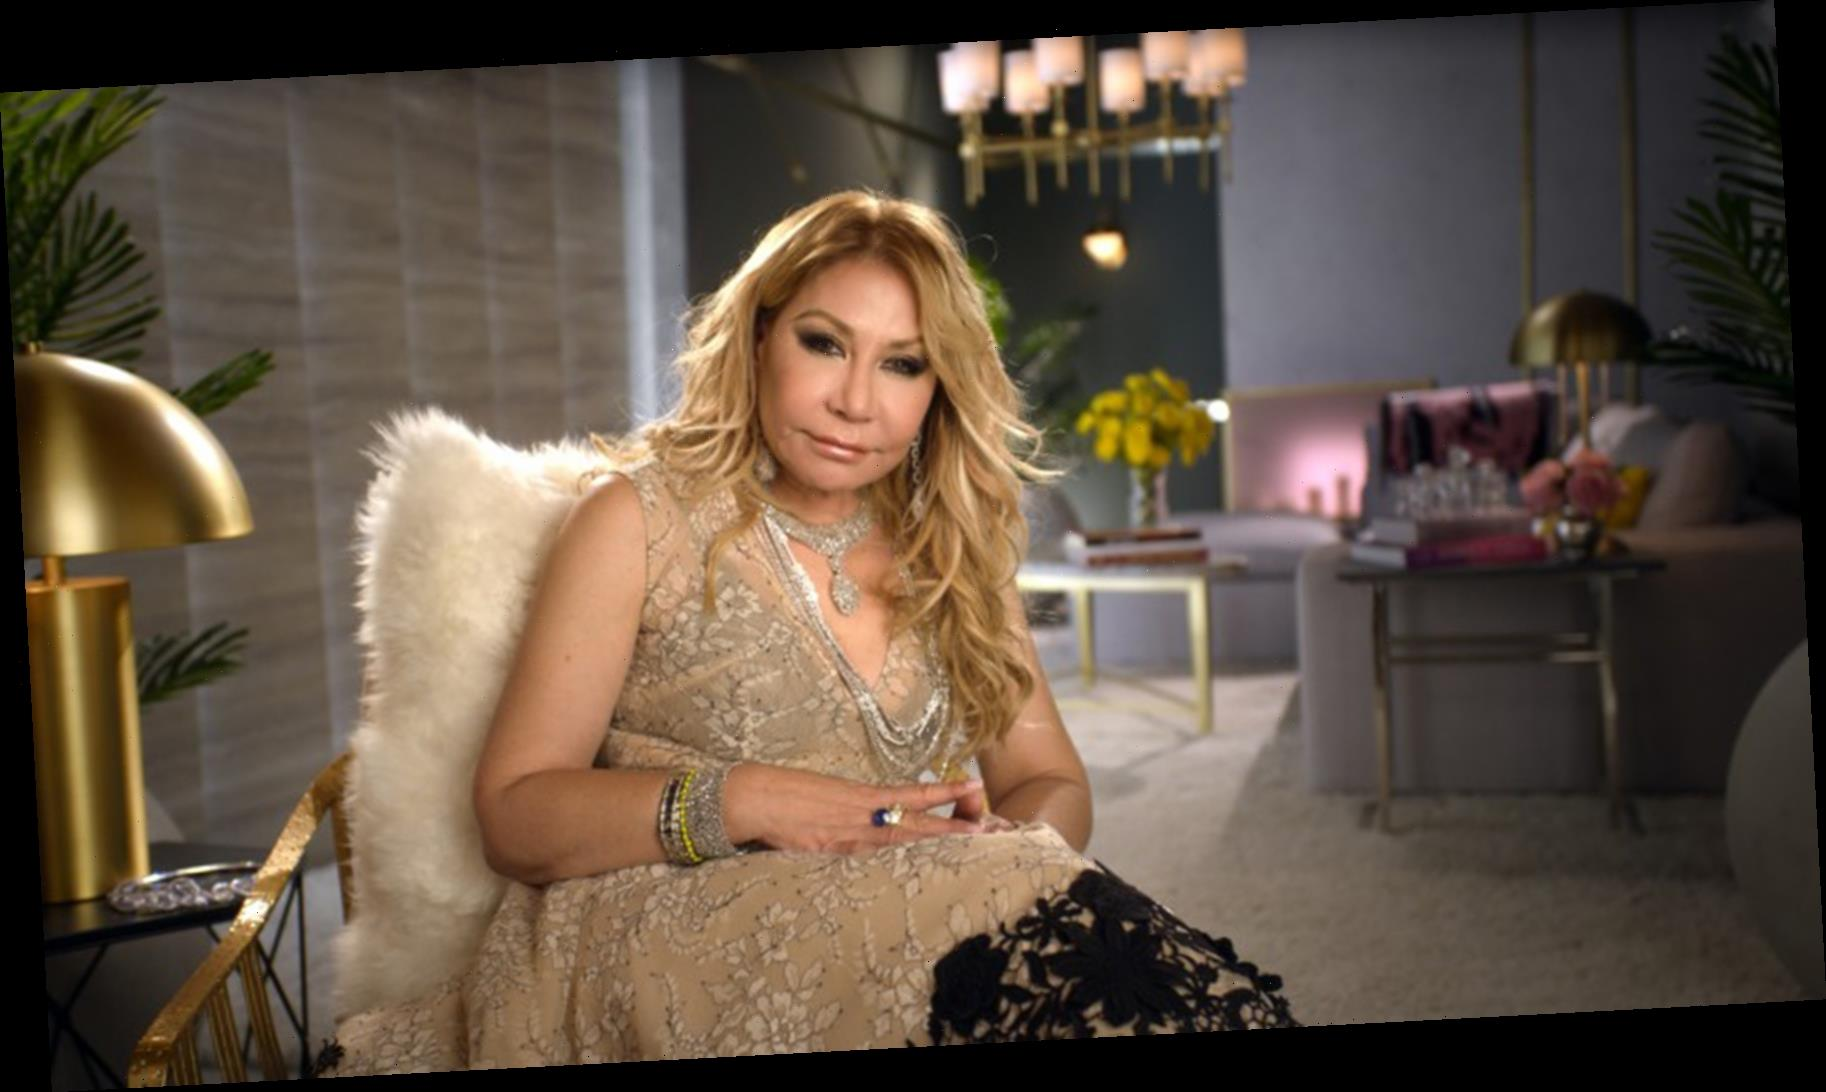 How old is Bling Empire's Anna Shay?